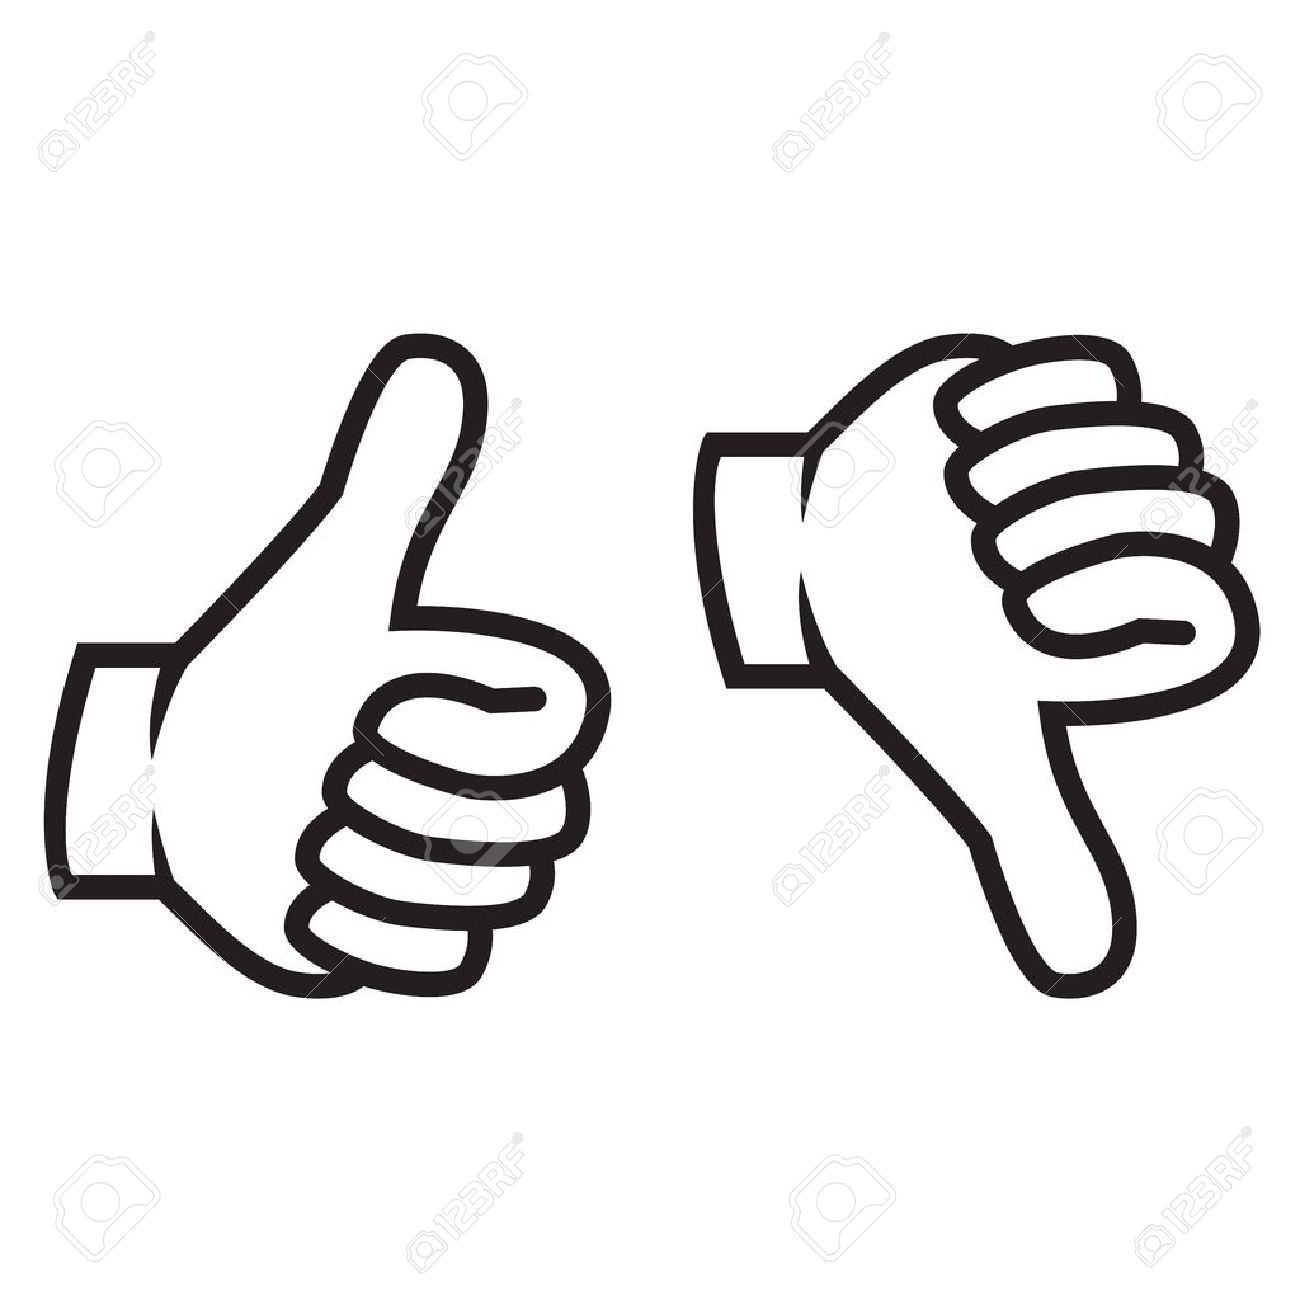 thumbs up and down gesture royalty free cliparts vectors and stock rh 123rf com thumbs up thumbs down clipart